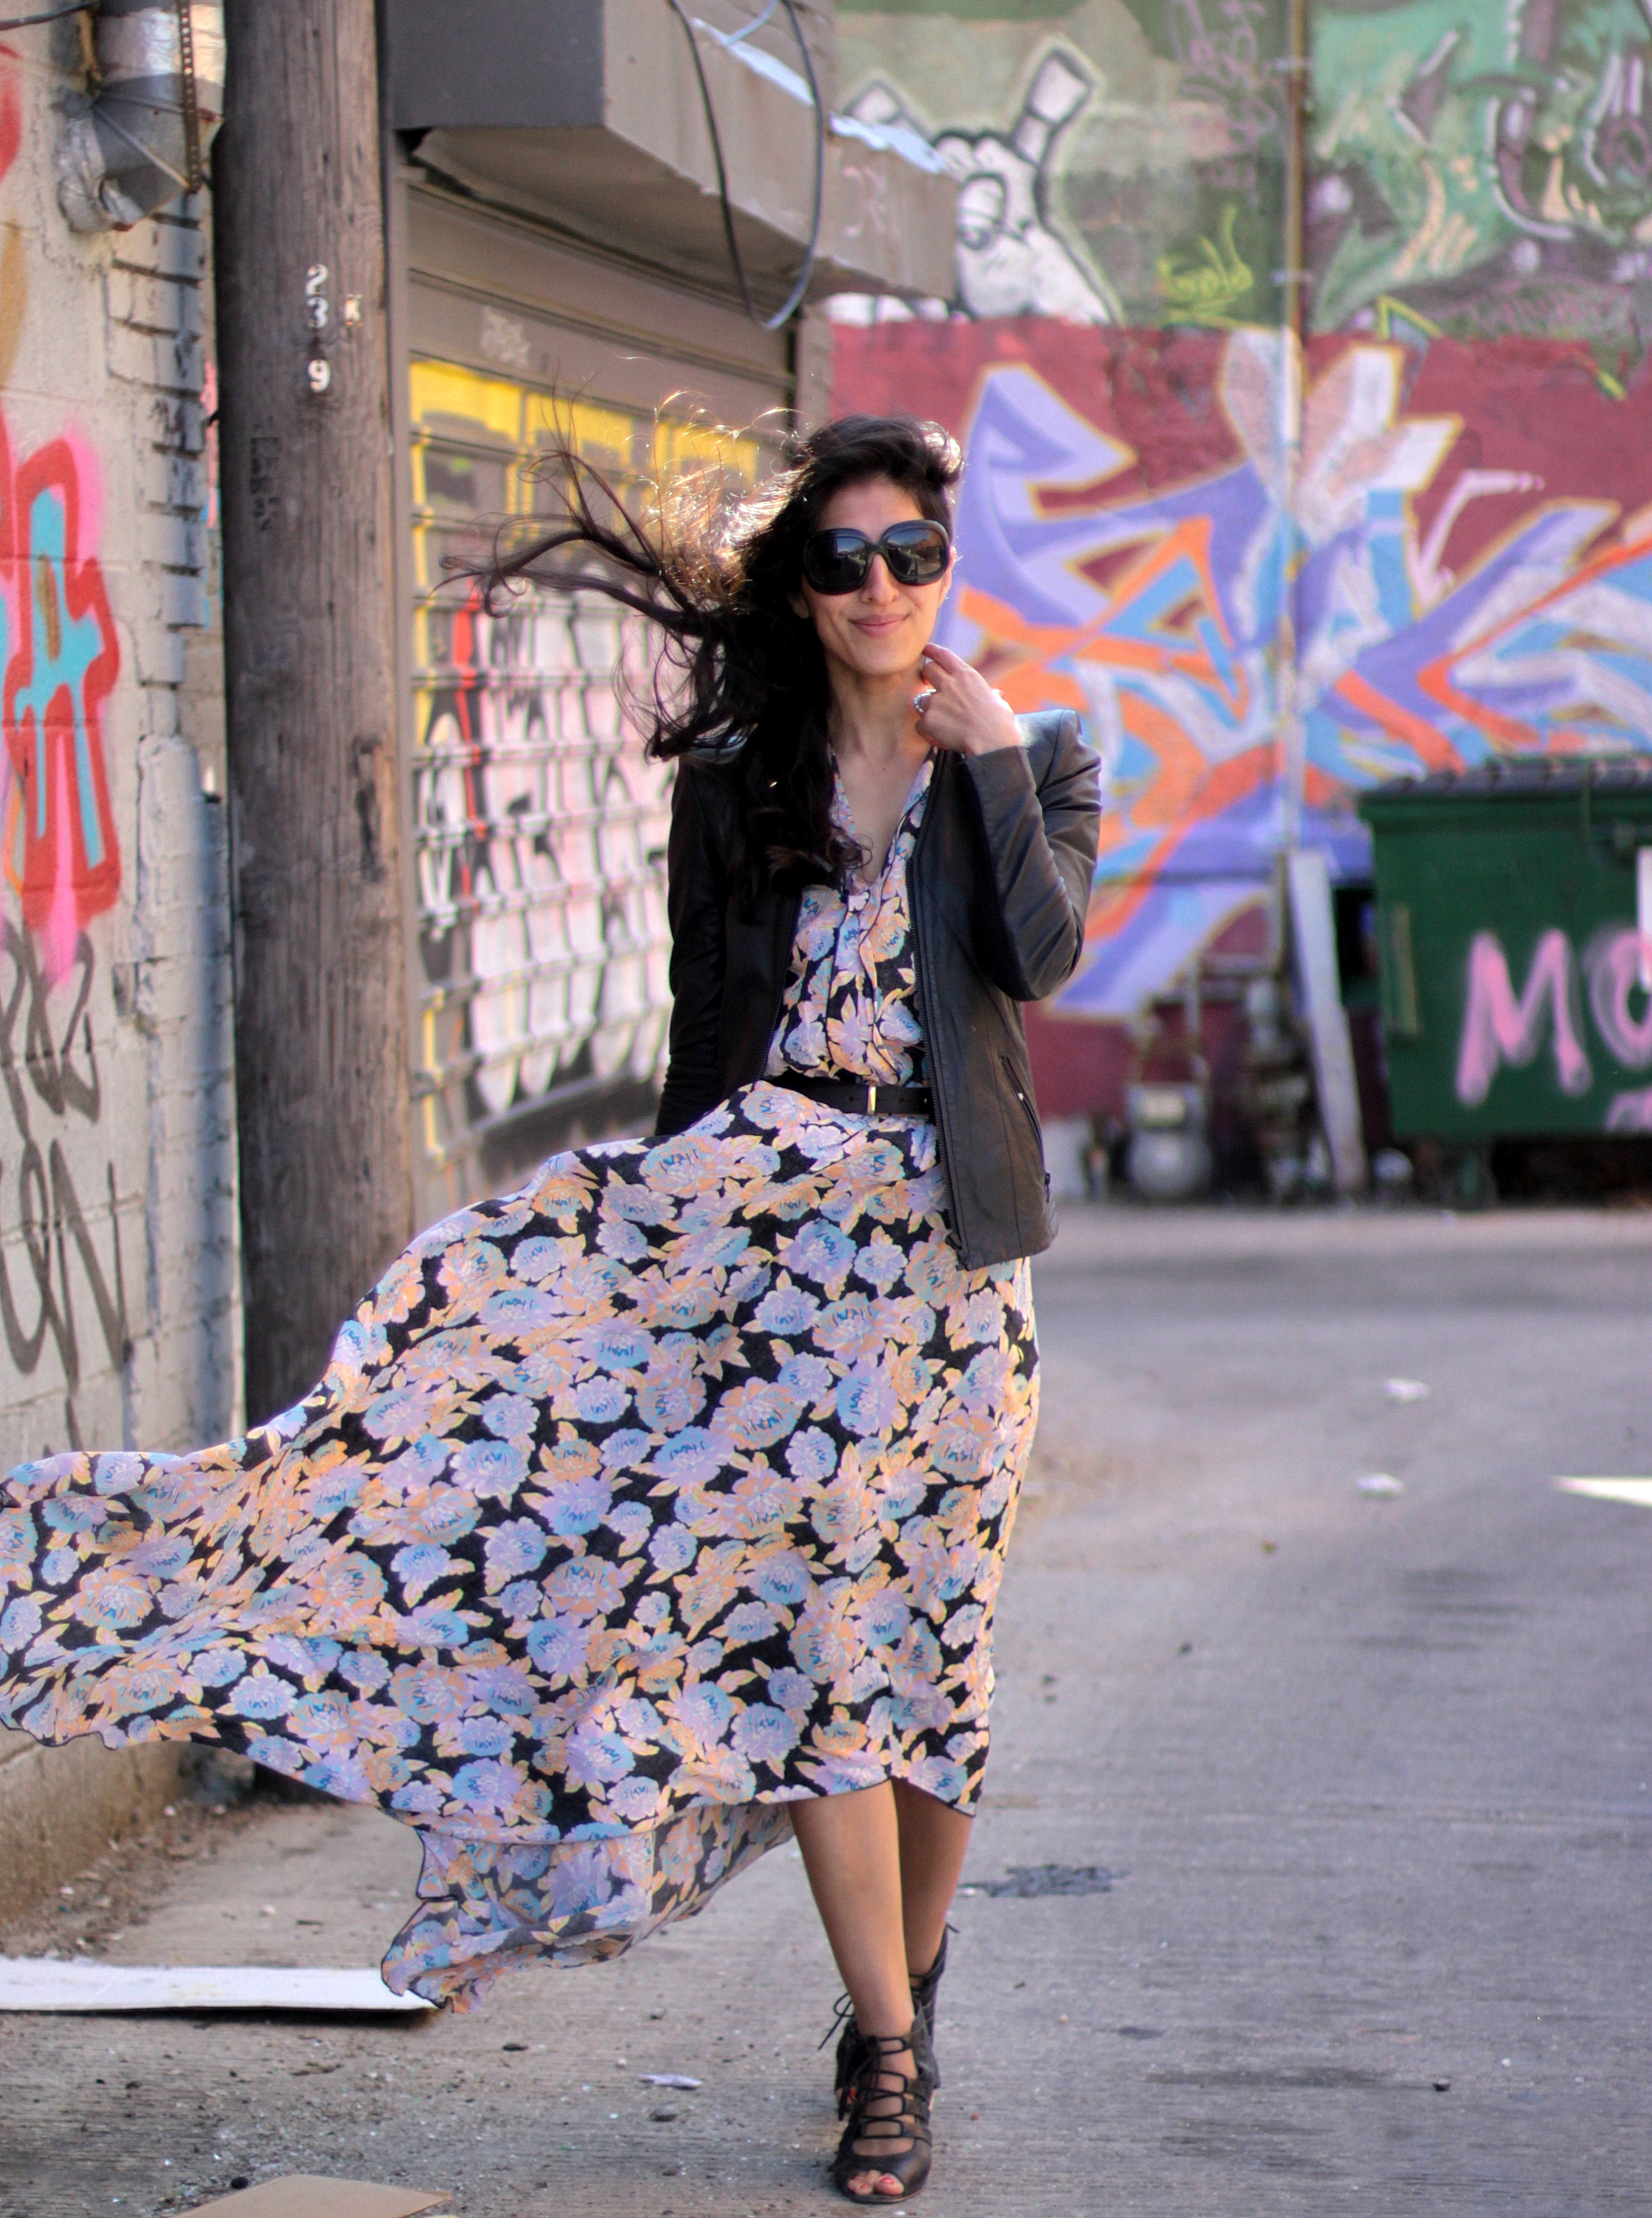 Without my trusty leather blazer jacket from Nordstrom, I would've been frozen in my lovely Ella Moss kimono-sleeve silk floral maxi dress! But the dark leather tempers the soft and sweet pastel shades, making it the perfect way to transition paler color palettes and floral prints into spring!